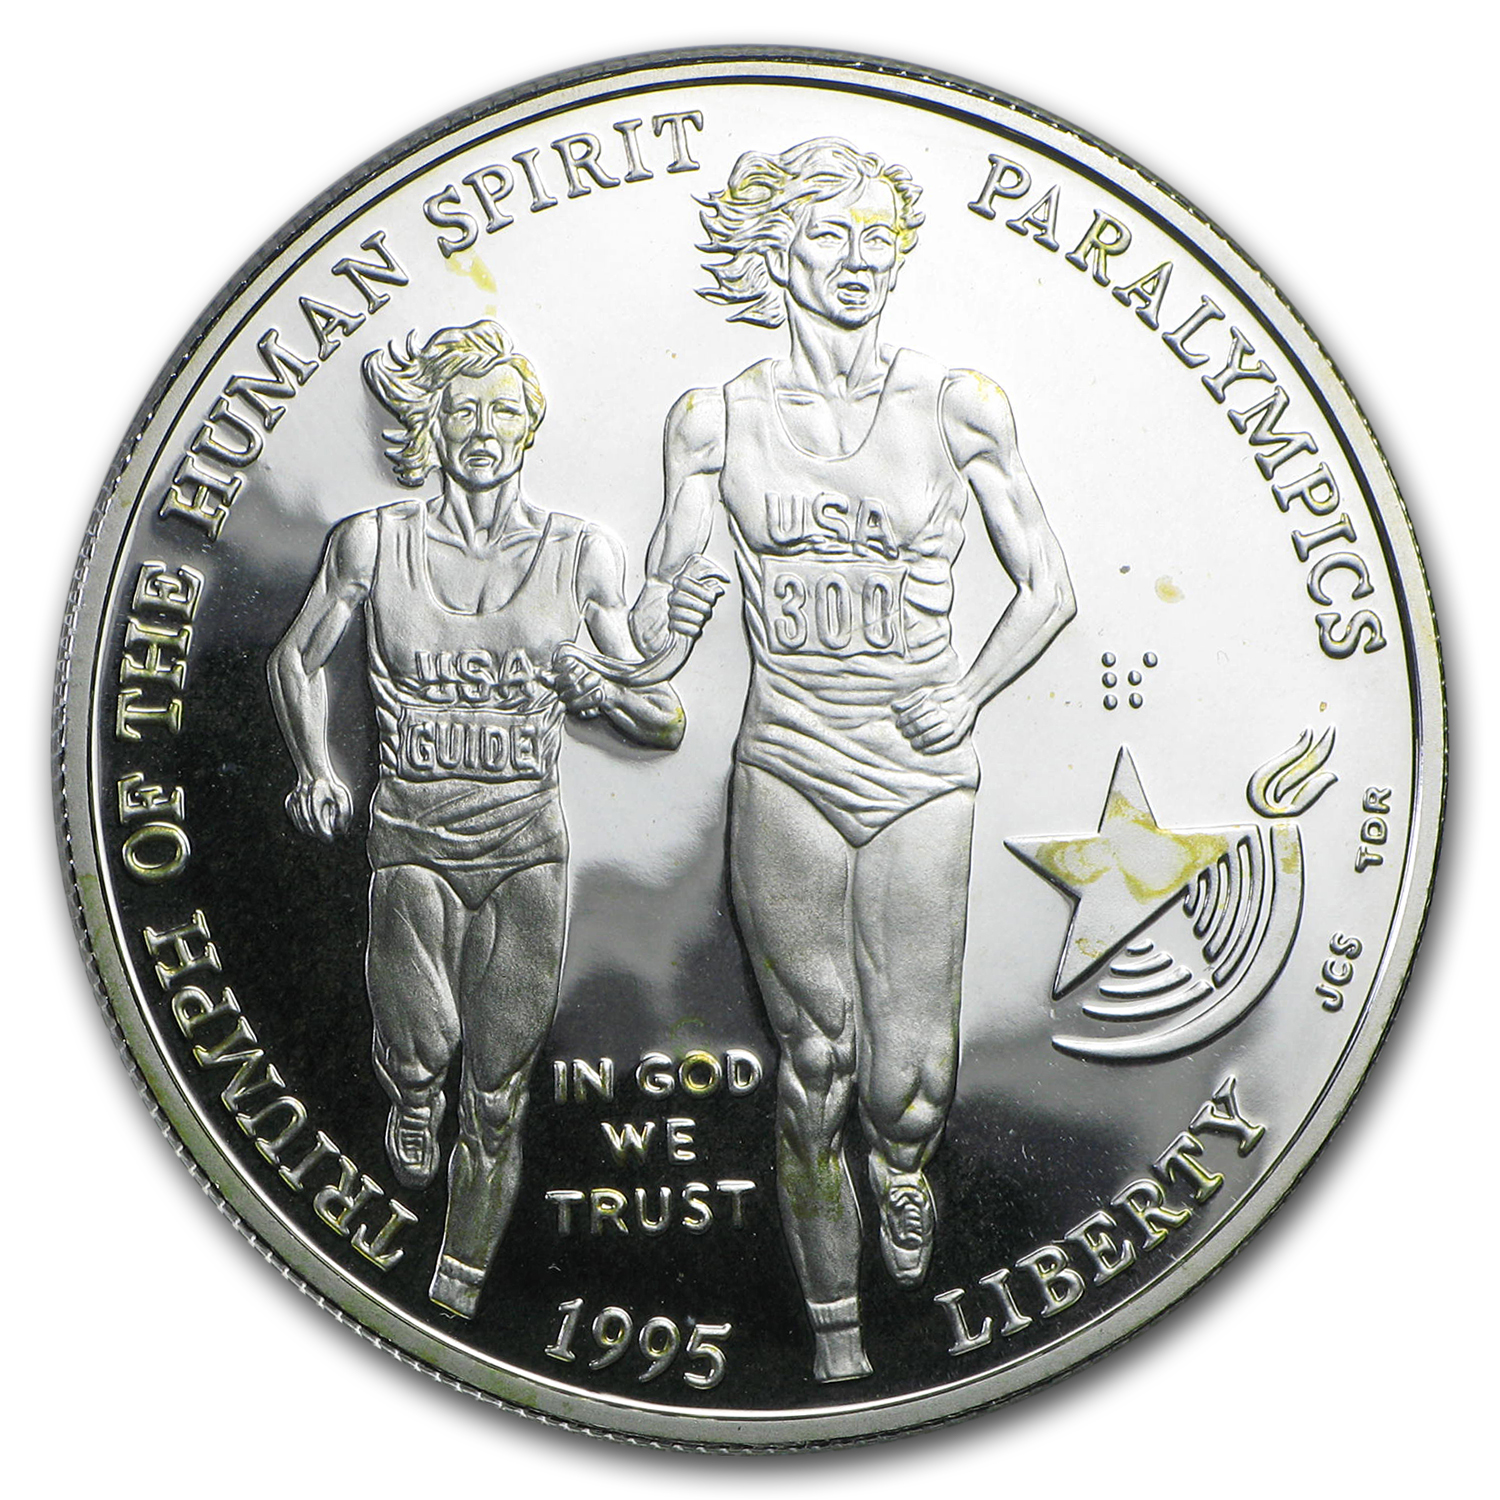 1995-P Olympic Blind Runner $1 Silver Commem Proof (Capsule only)